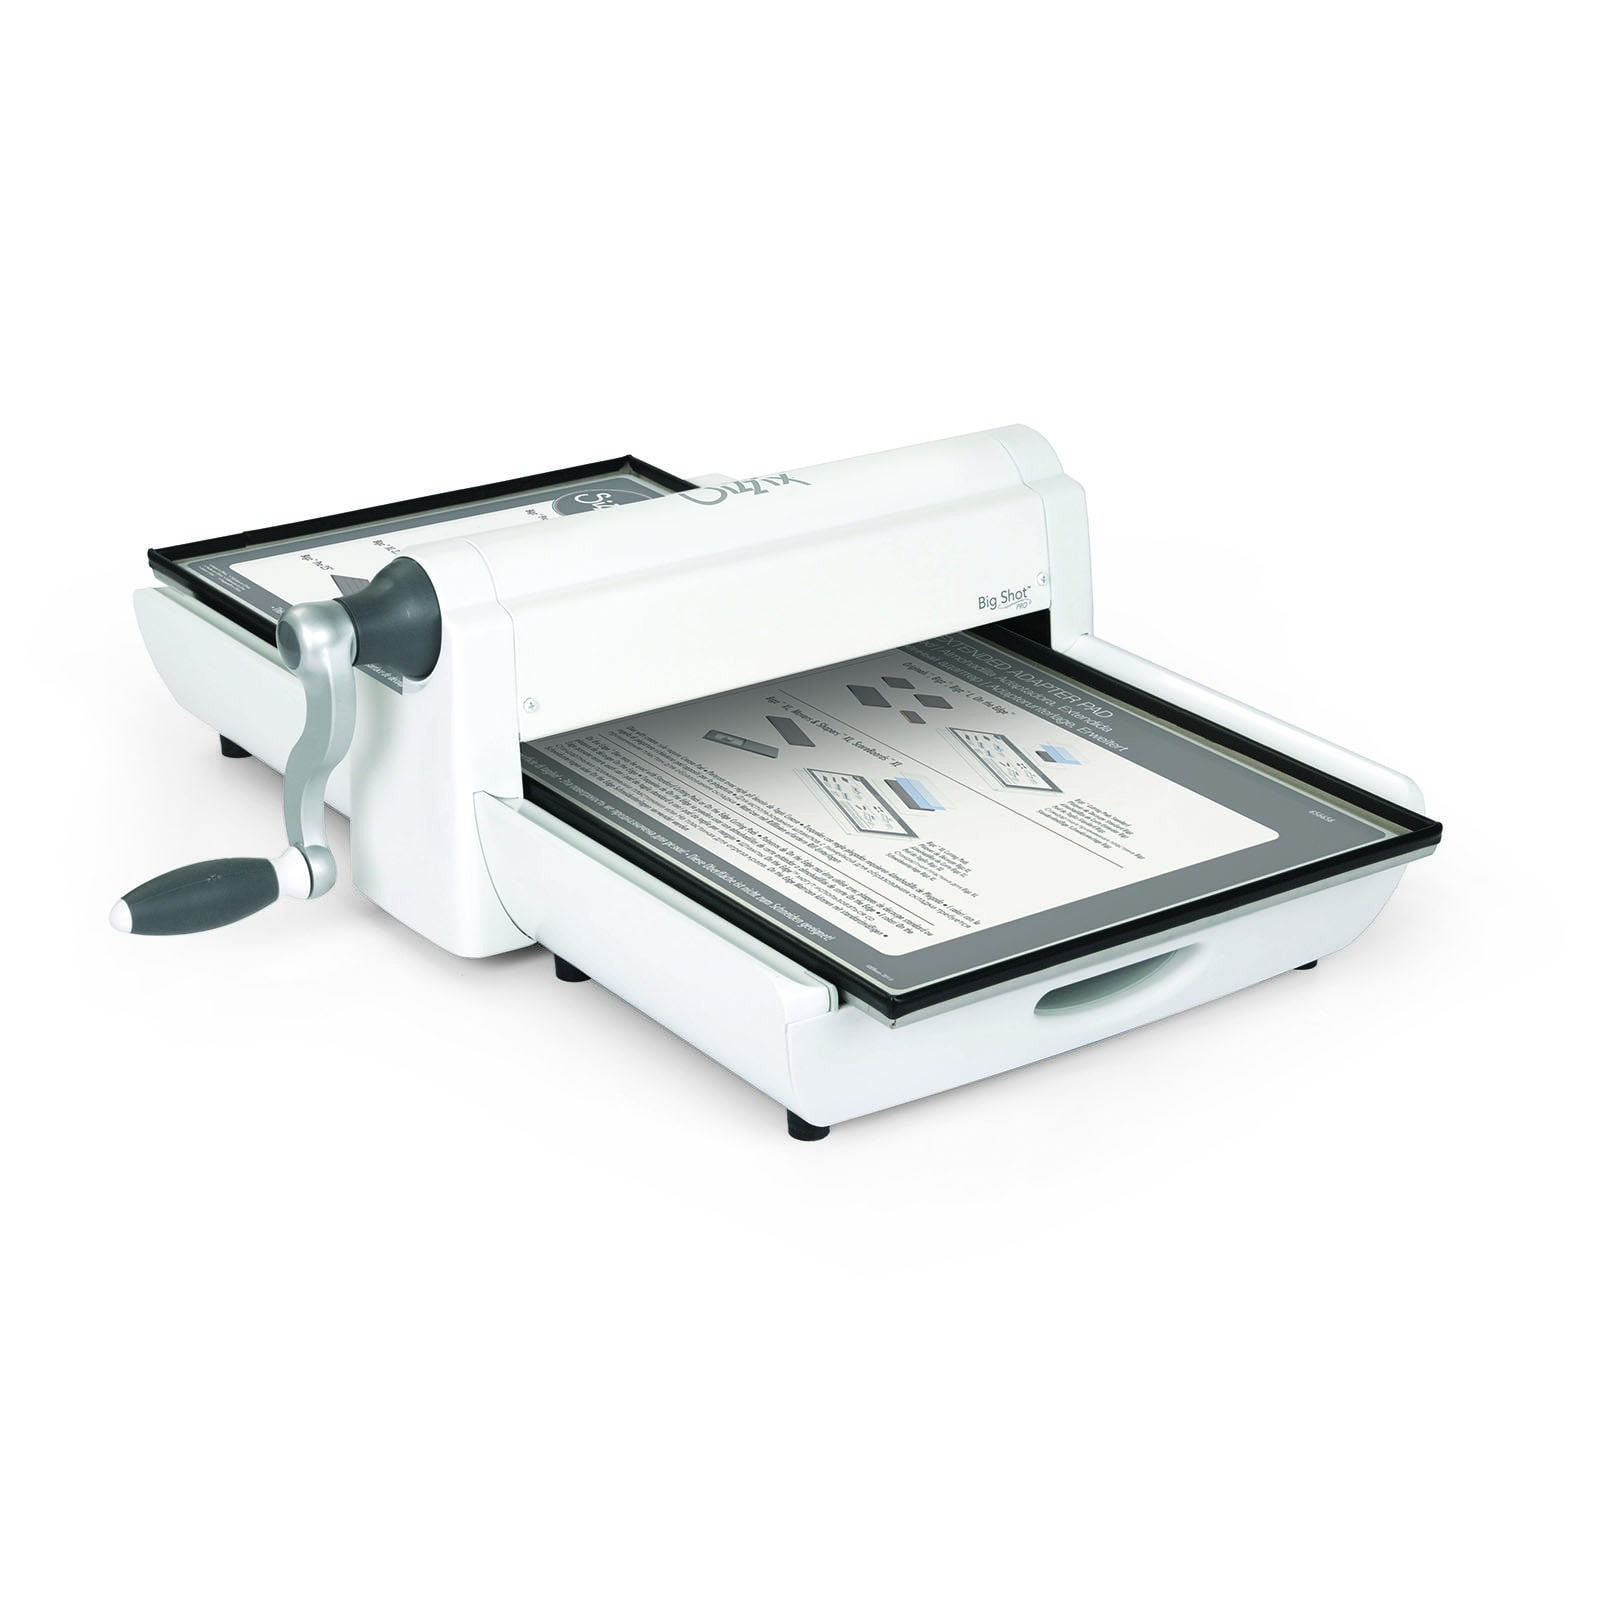 Sizzix Big Shot Pro Die Cutting and Embossing Machine wit...